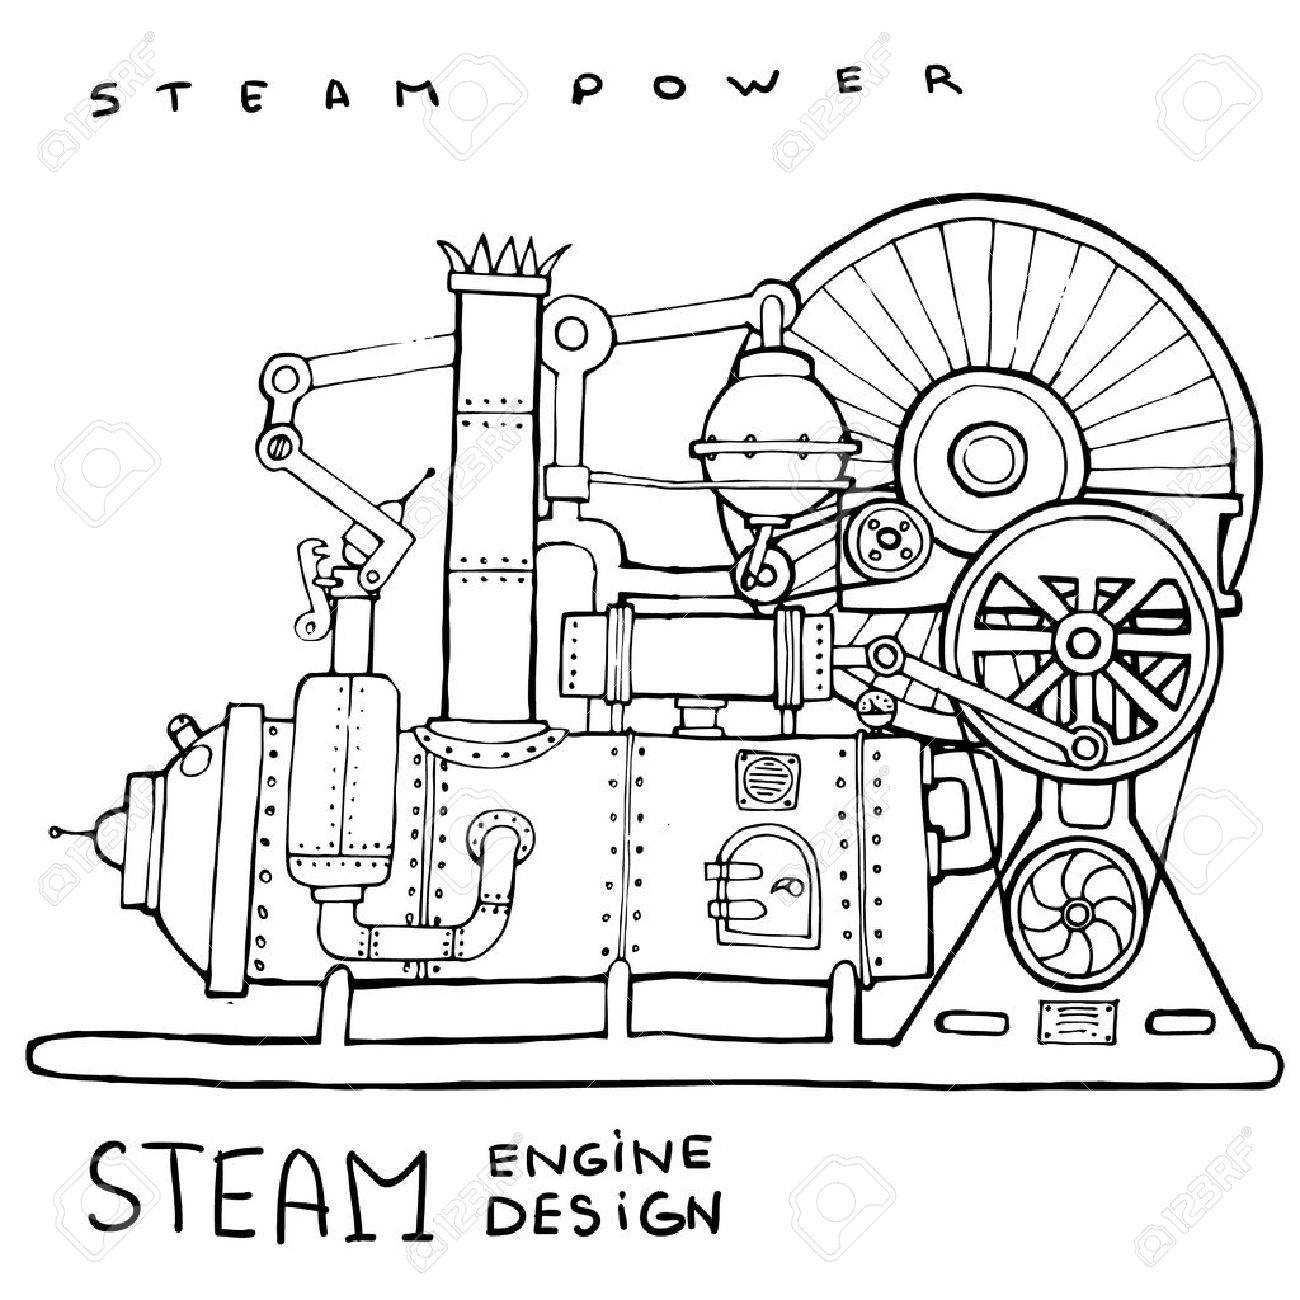 Old Steam Engine Hand Drawn Vintage Illustrationvector Royalty Diagram Of Stock Vector 47354248